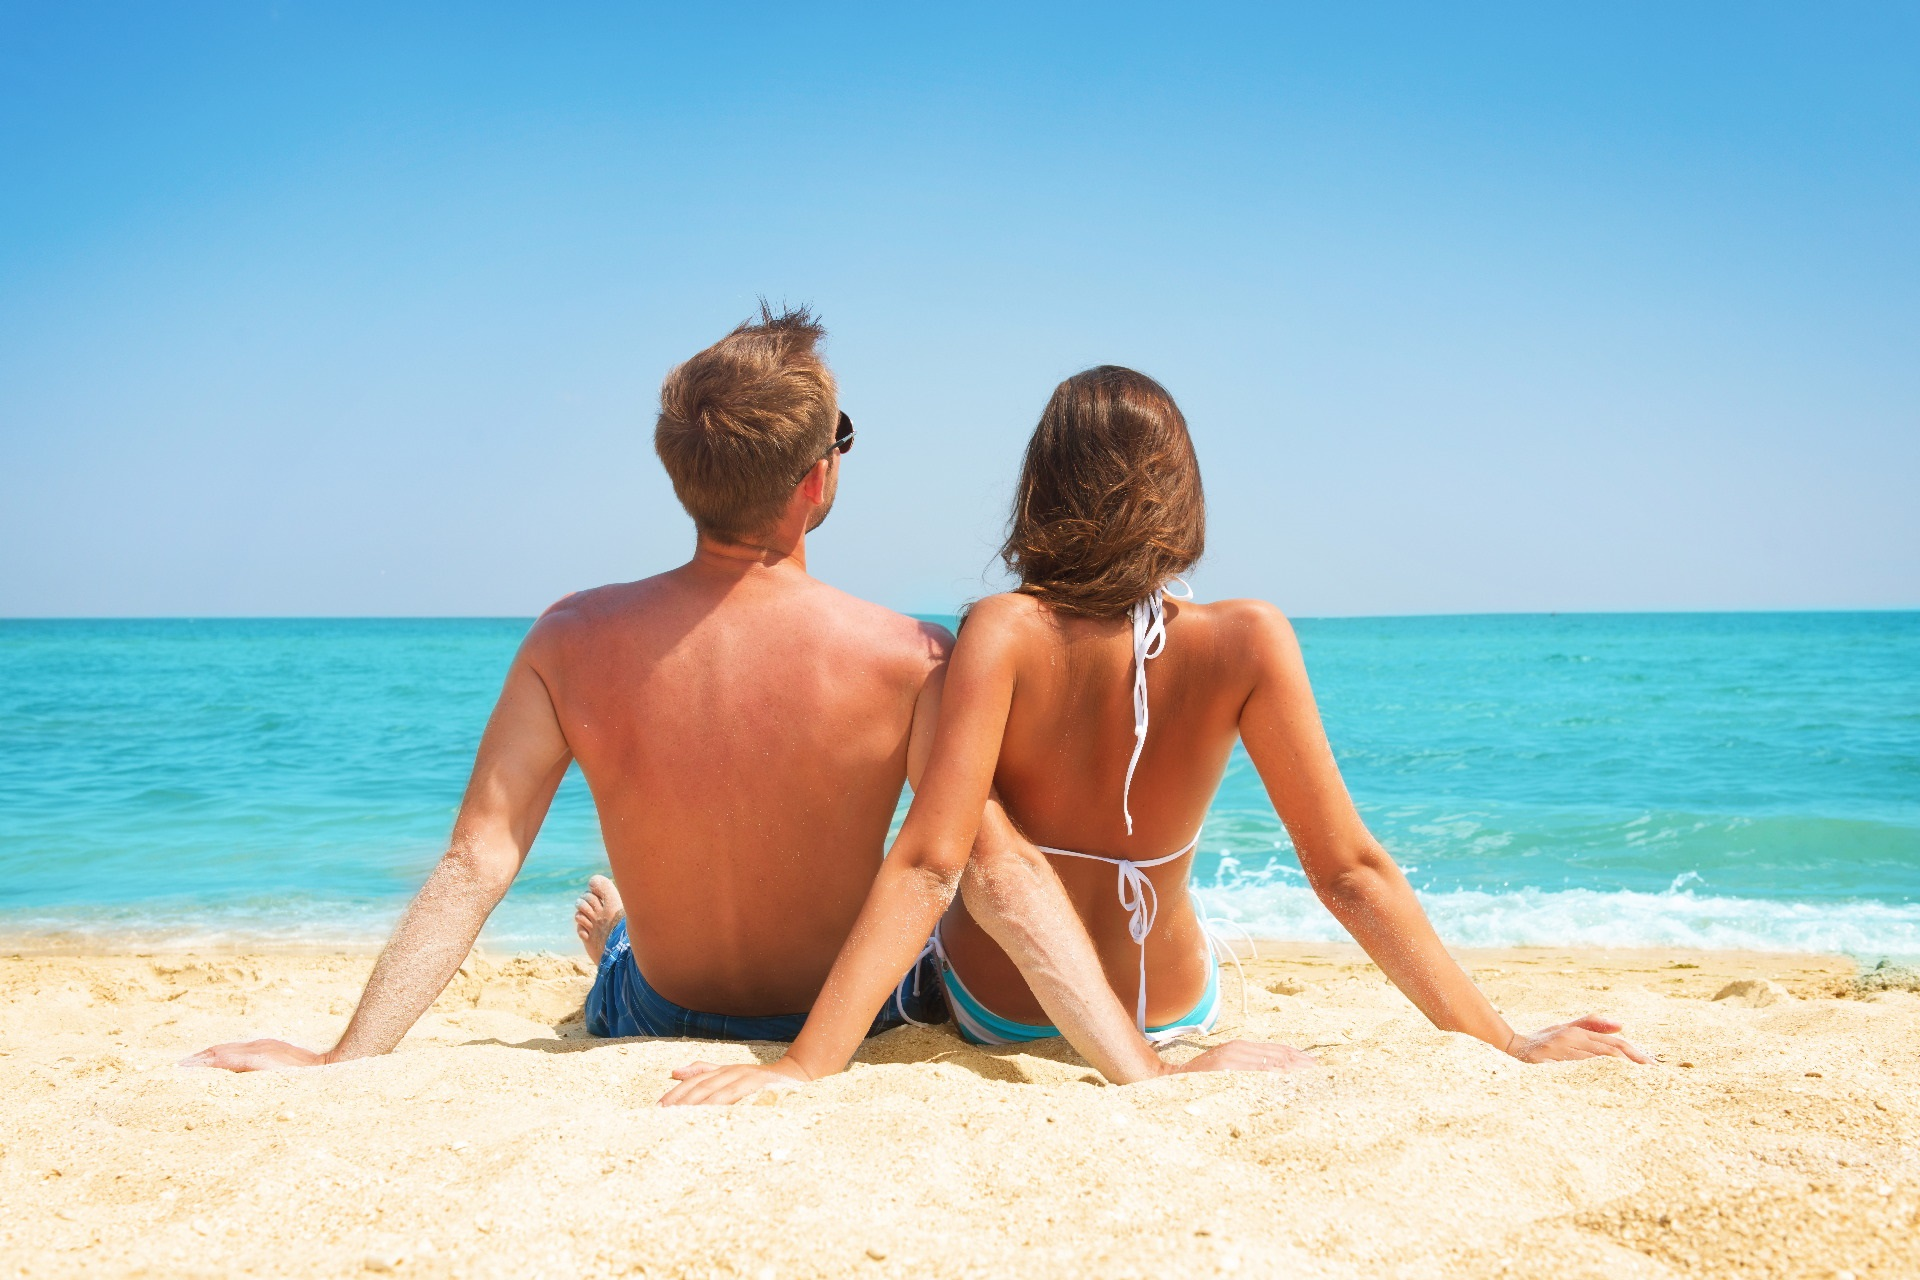 Young Couple Sitting together on the Beach. Vacation concept